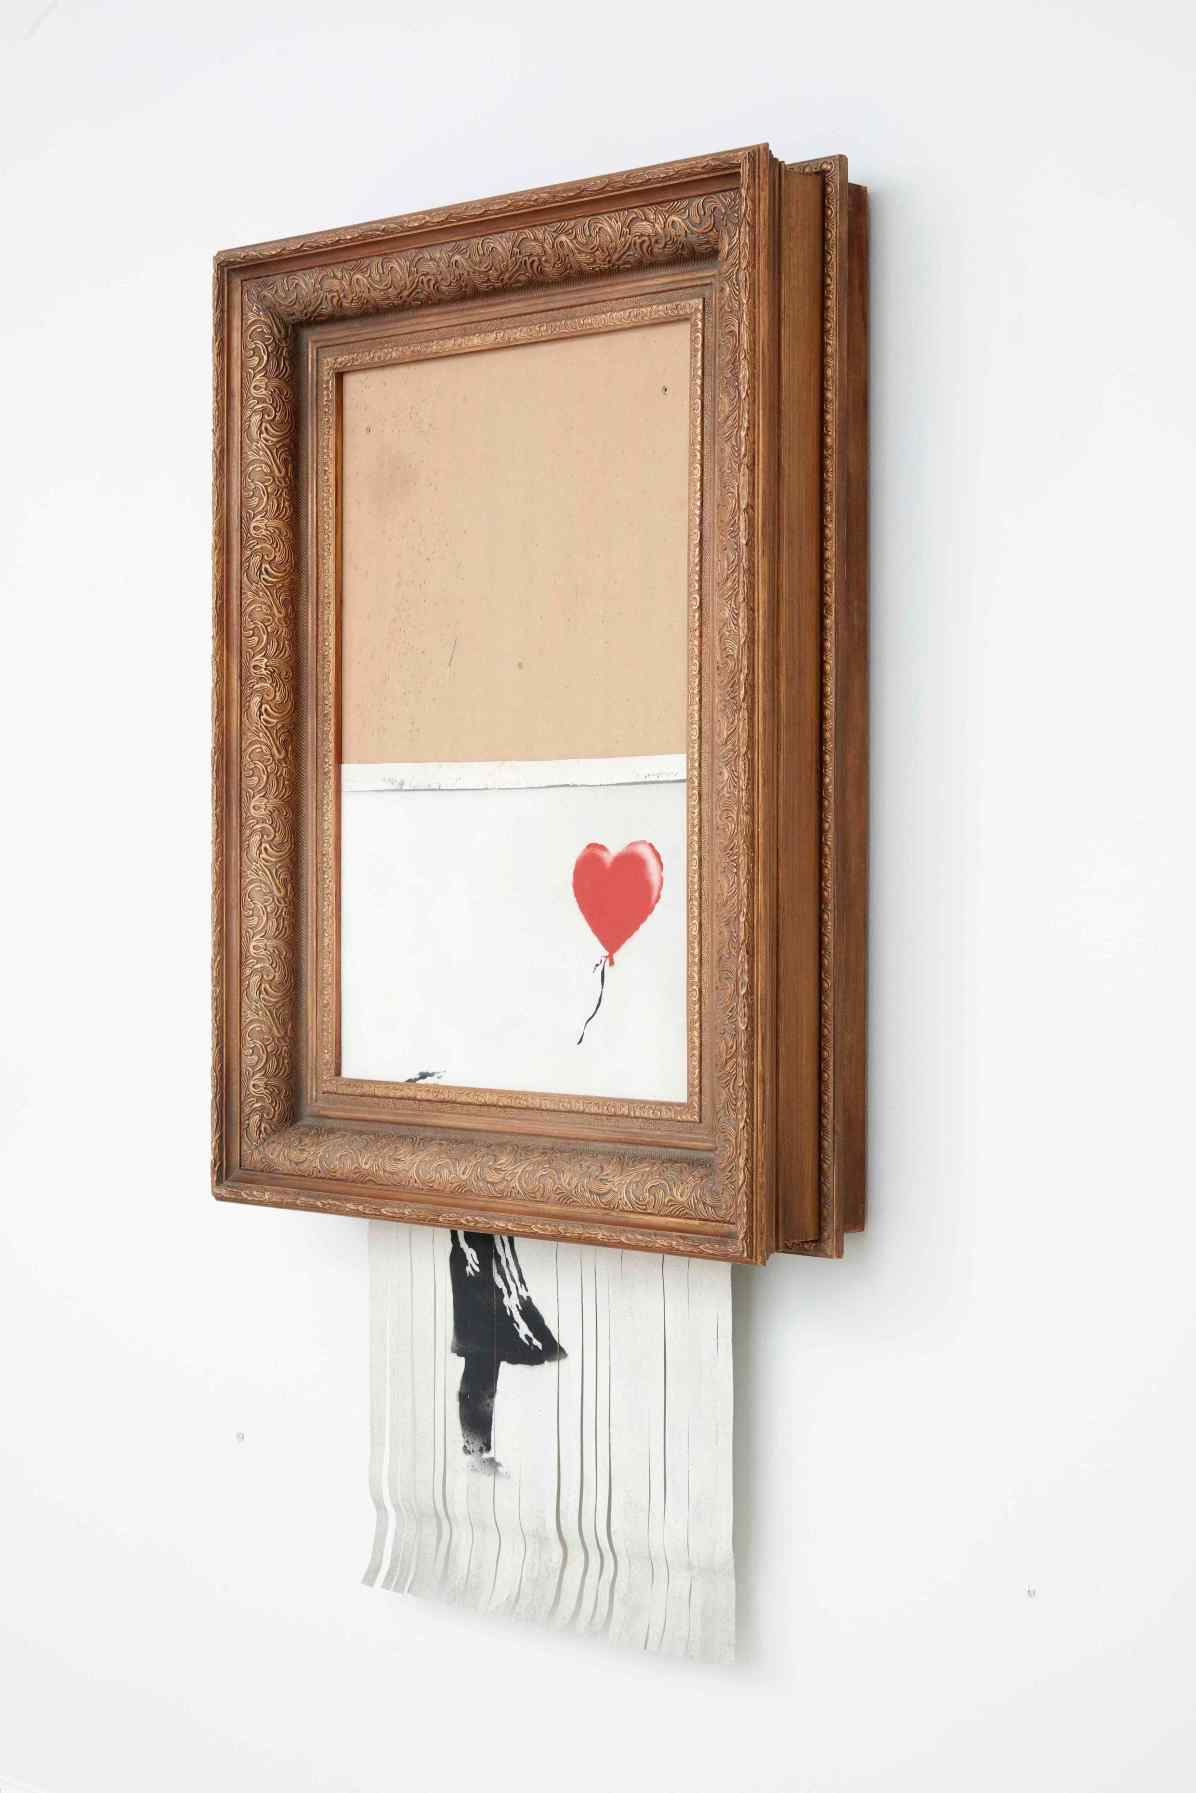 Banksy, Love is in the Bin, 2018. Private collection; photo: Sotheby's © Banksy